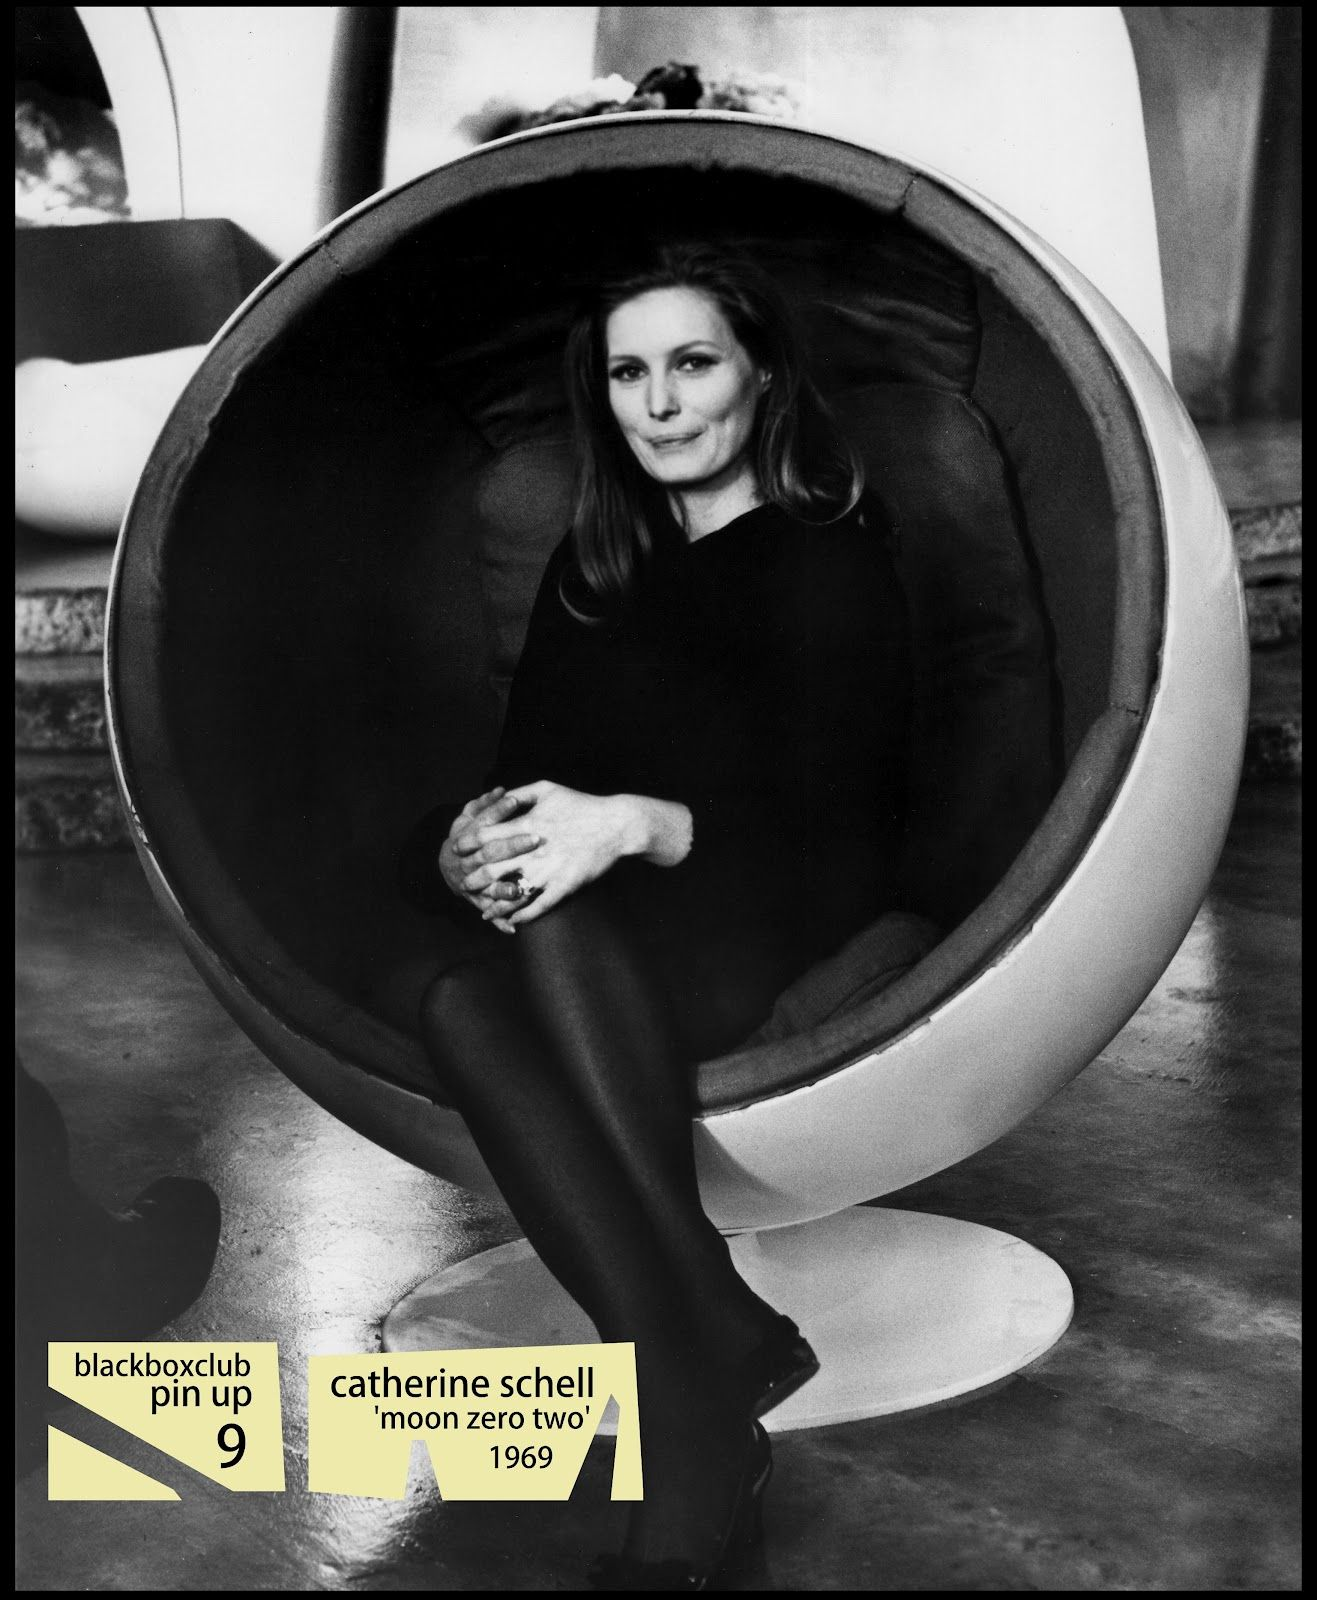 catherine schell a constant aliencatherine schell now, catherine schell images, catherine schell maya, catherine schell pictures, catherine schell imdb, catherine schell photos, catherine schell obituary, catherine schell 2015, catherine schell moon zero two, catherine schell maya space 1999, catherine schell biography, catherine schell interview, catherine schell peter sellers, catherine schell a constant alien, catherine schell hotel, catherine schell actor, catherine schell bond, catherine schell net worth, catherine schell gallery, catherine schell movies and tv shows